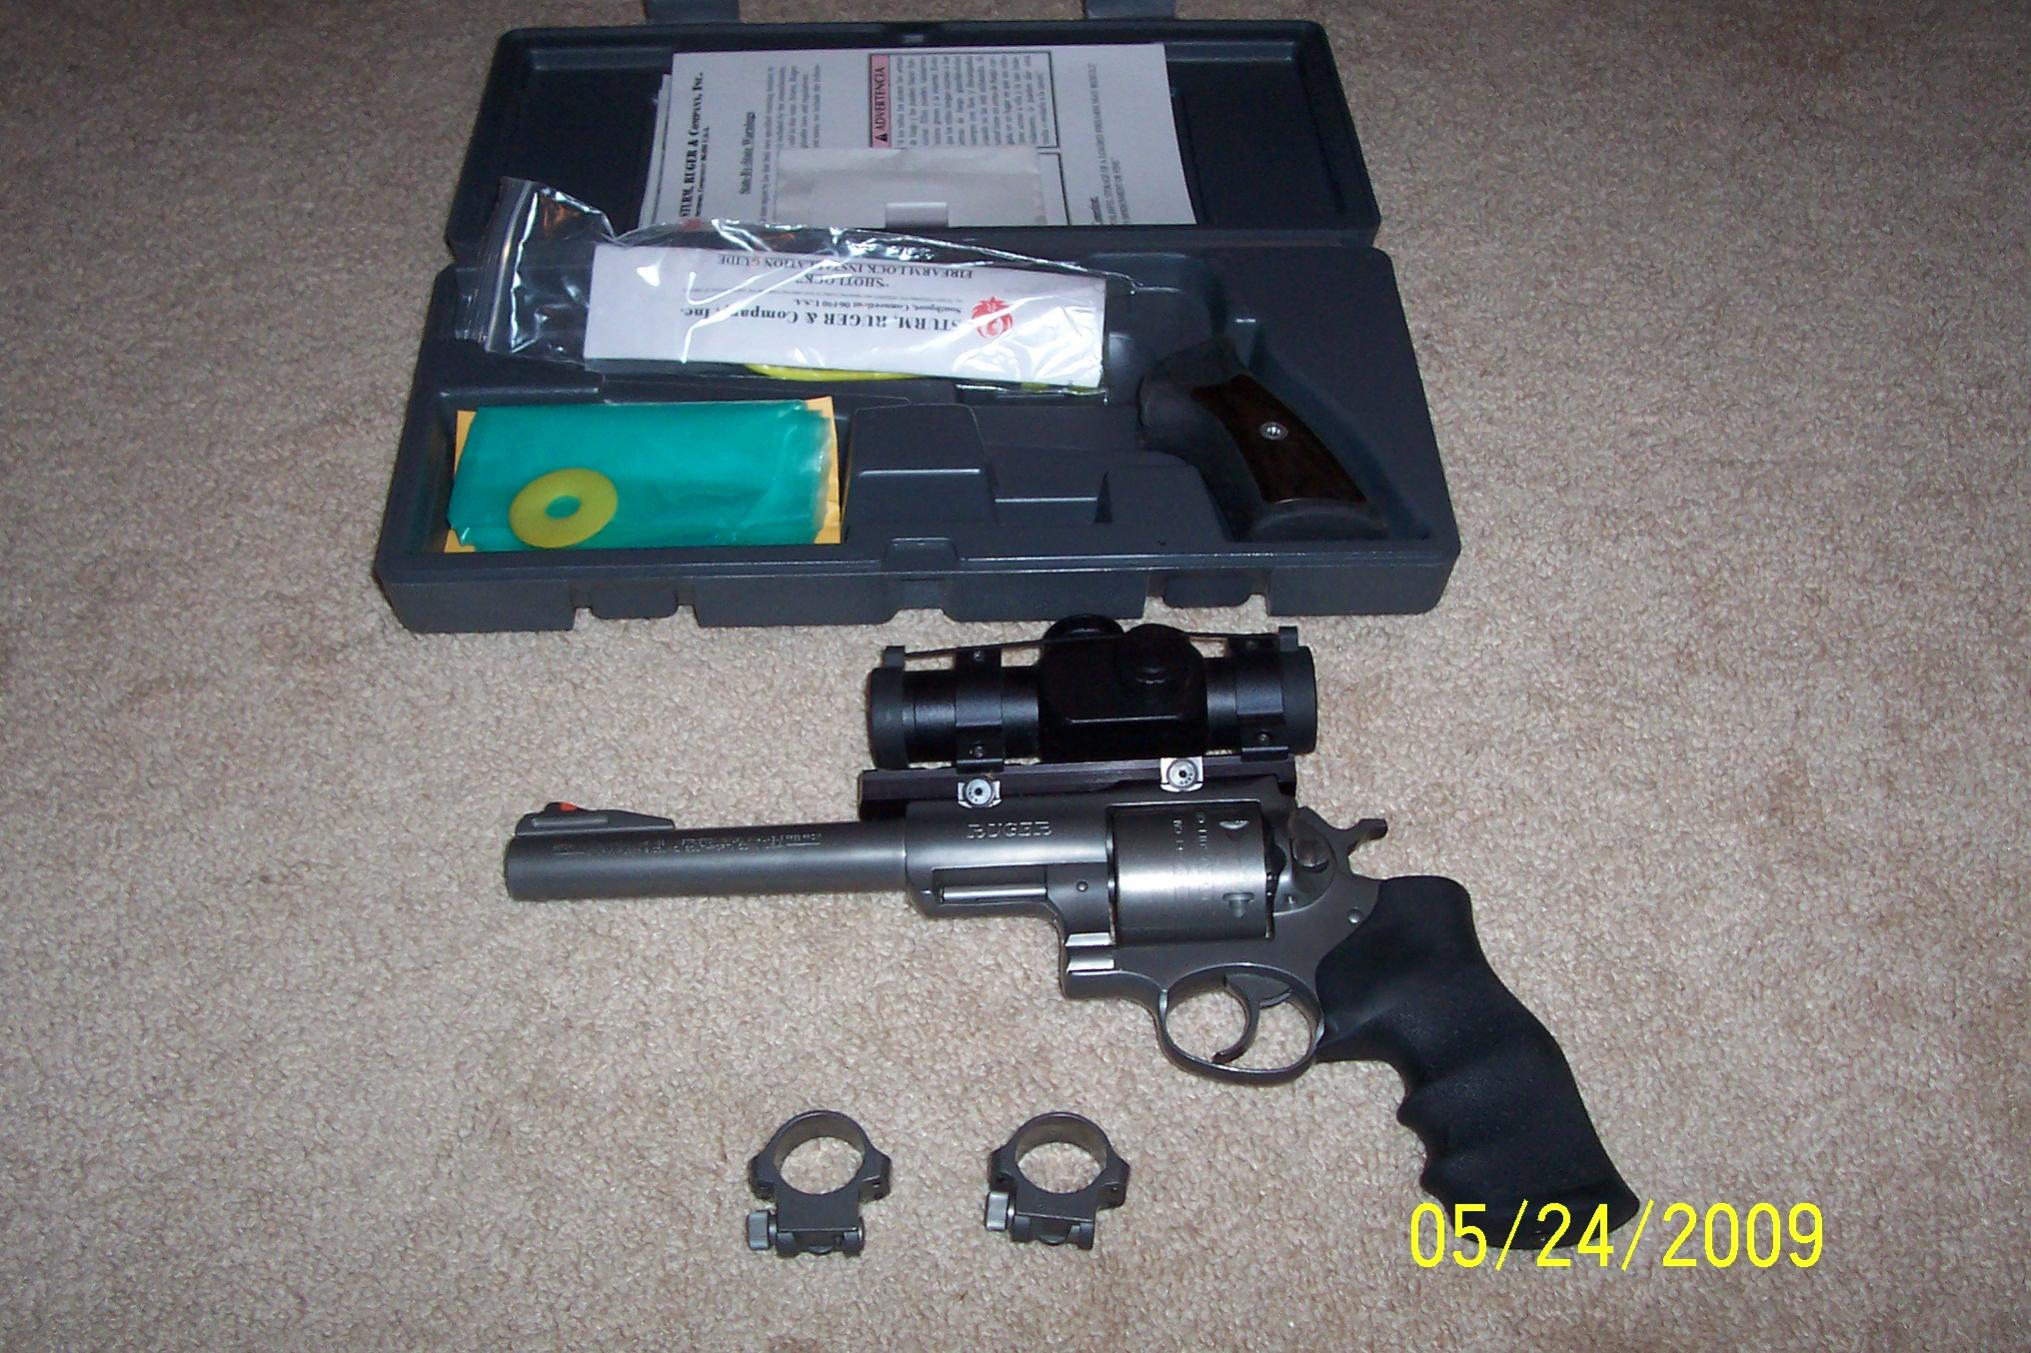 WTS Practically New Ruger Super Red Hawk .454 Casull w/ Bushnell Red Dot Scope : [NC]-100_3986.jpg